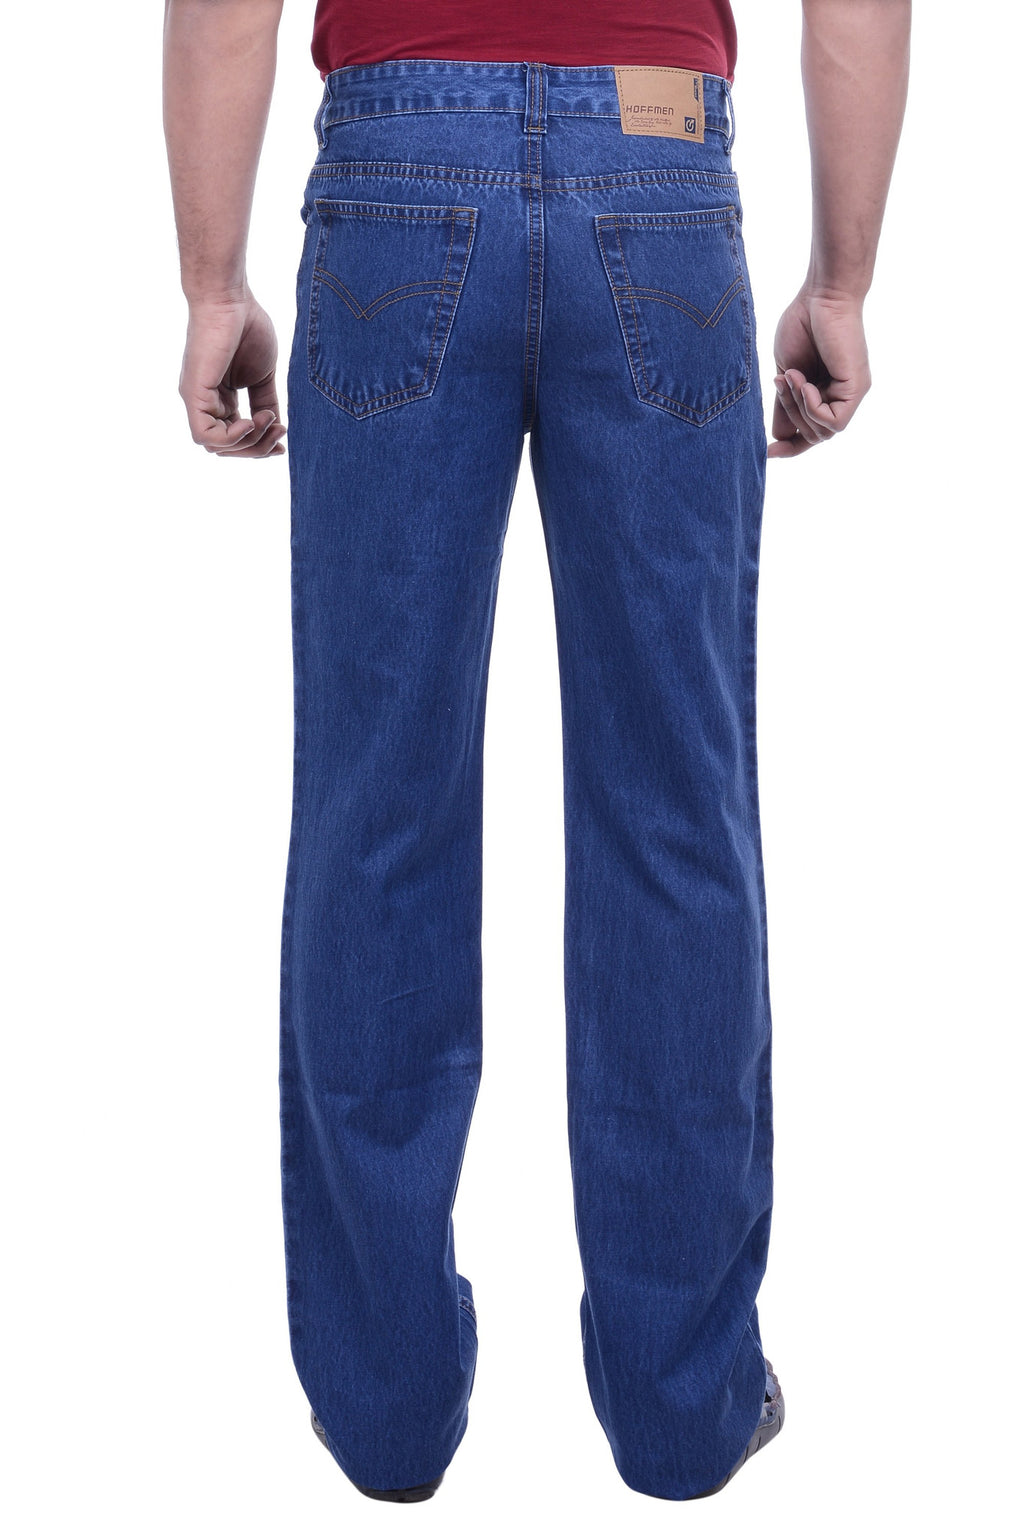 Hoffmen Men's Regular Fit  Cowboy Denimax Silky Jeans SDG2101